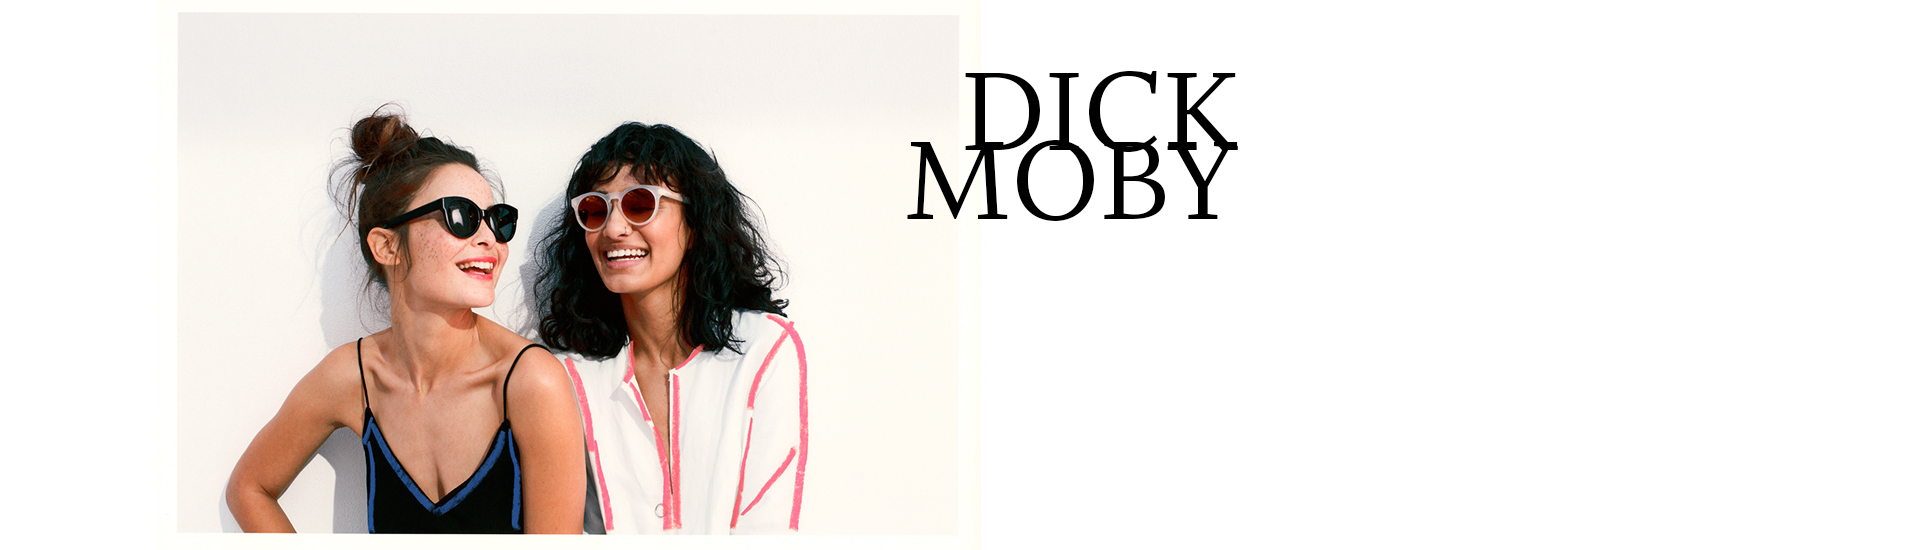 slider-dickmoby_faceprint